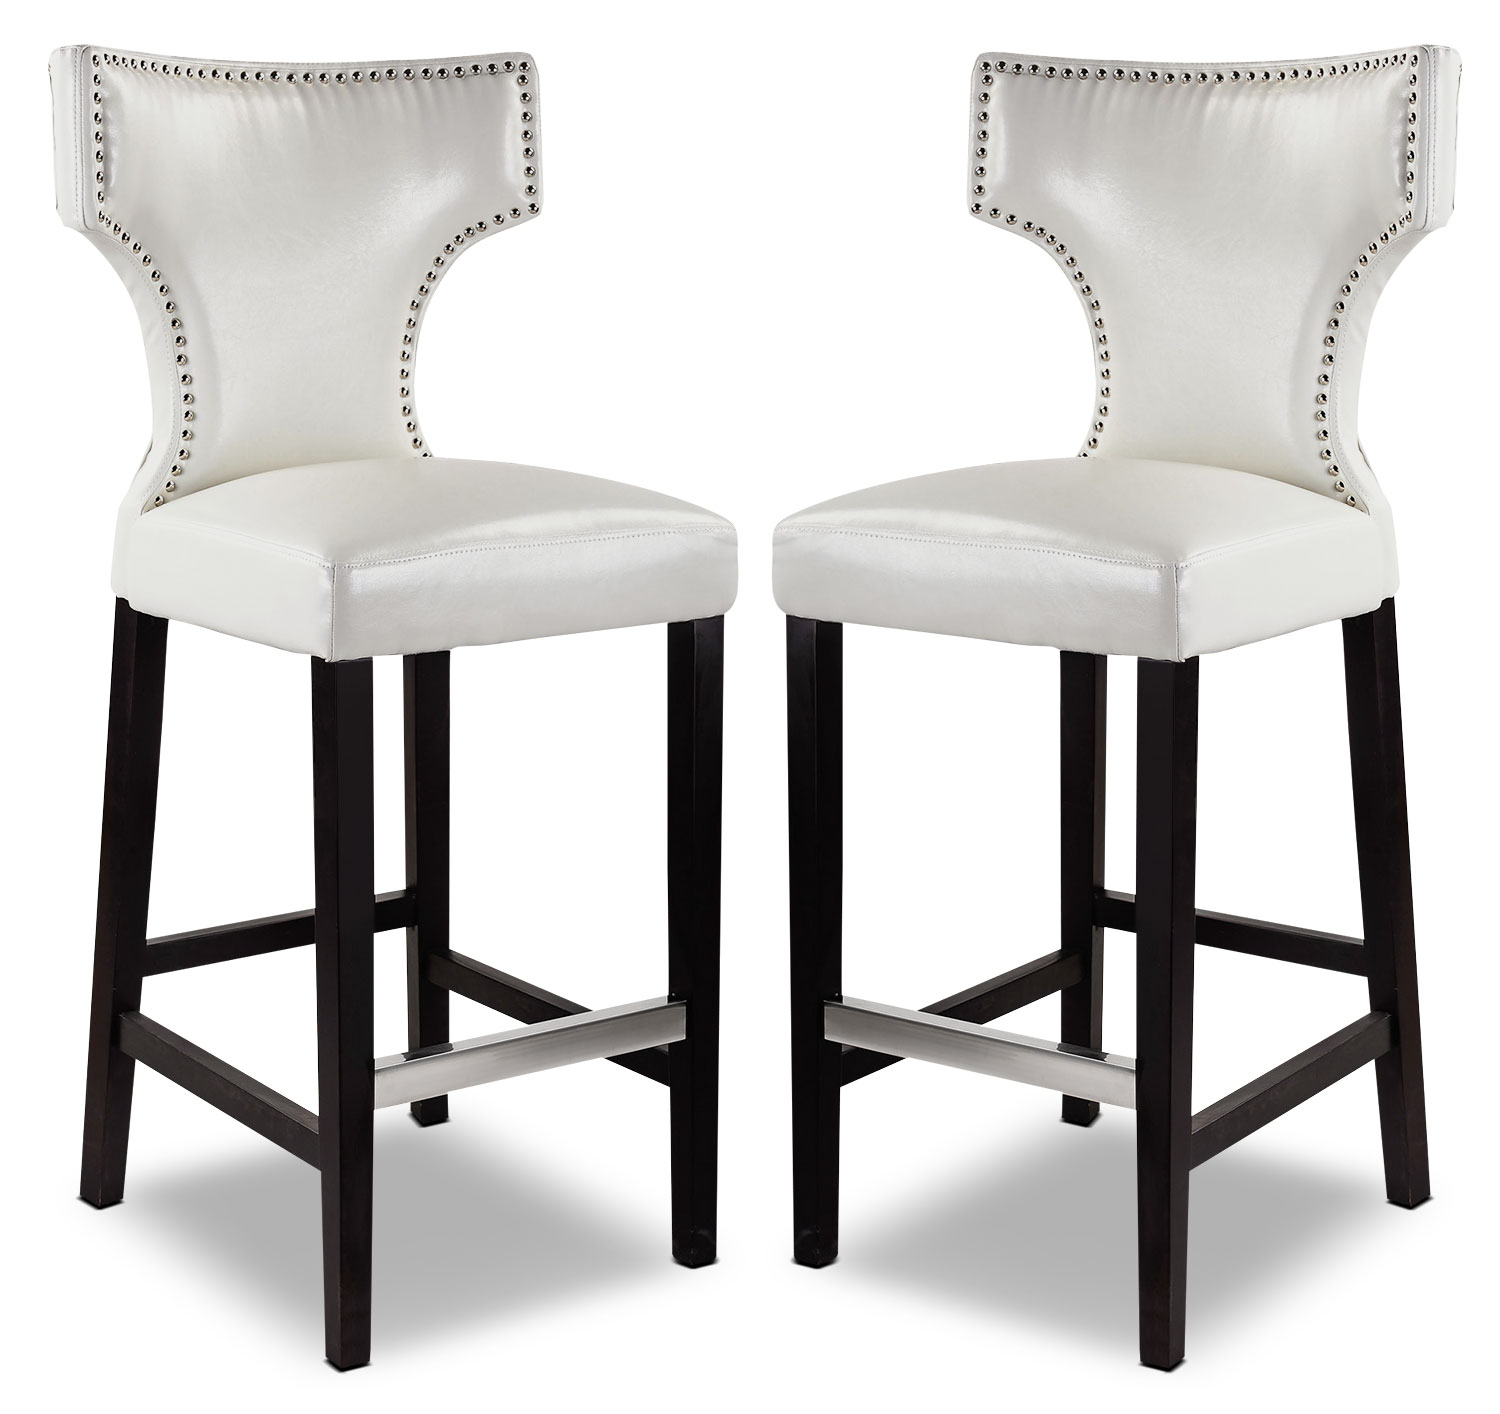 Kings bar stool with metal studs set of 2 white the brick for White breakfast bar stools